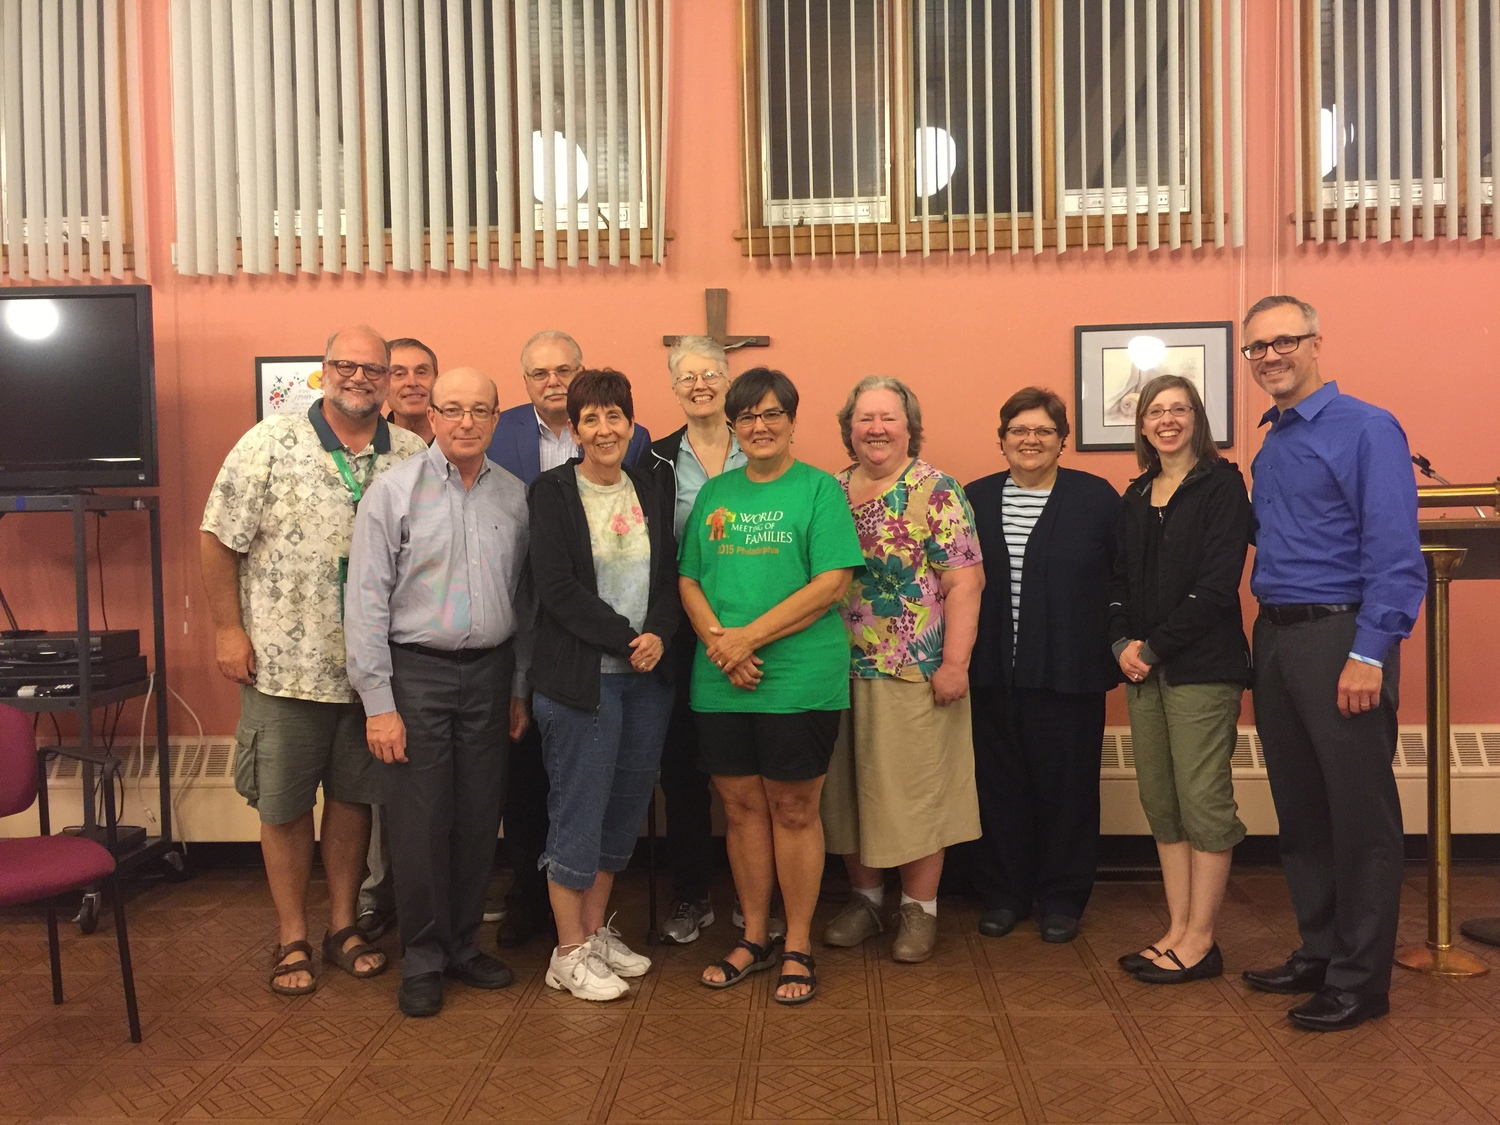 The World Meeting of Families: shown here is a group from both Ohio and New Jersey who met in the Fall of 2015 to discuss the World Meeting of Families.